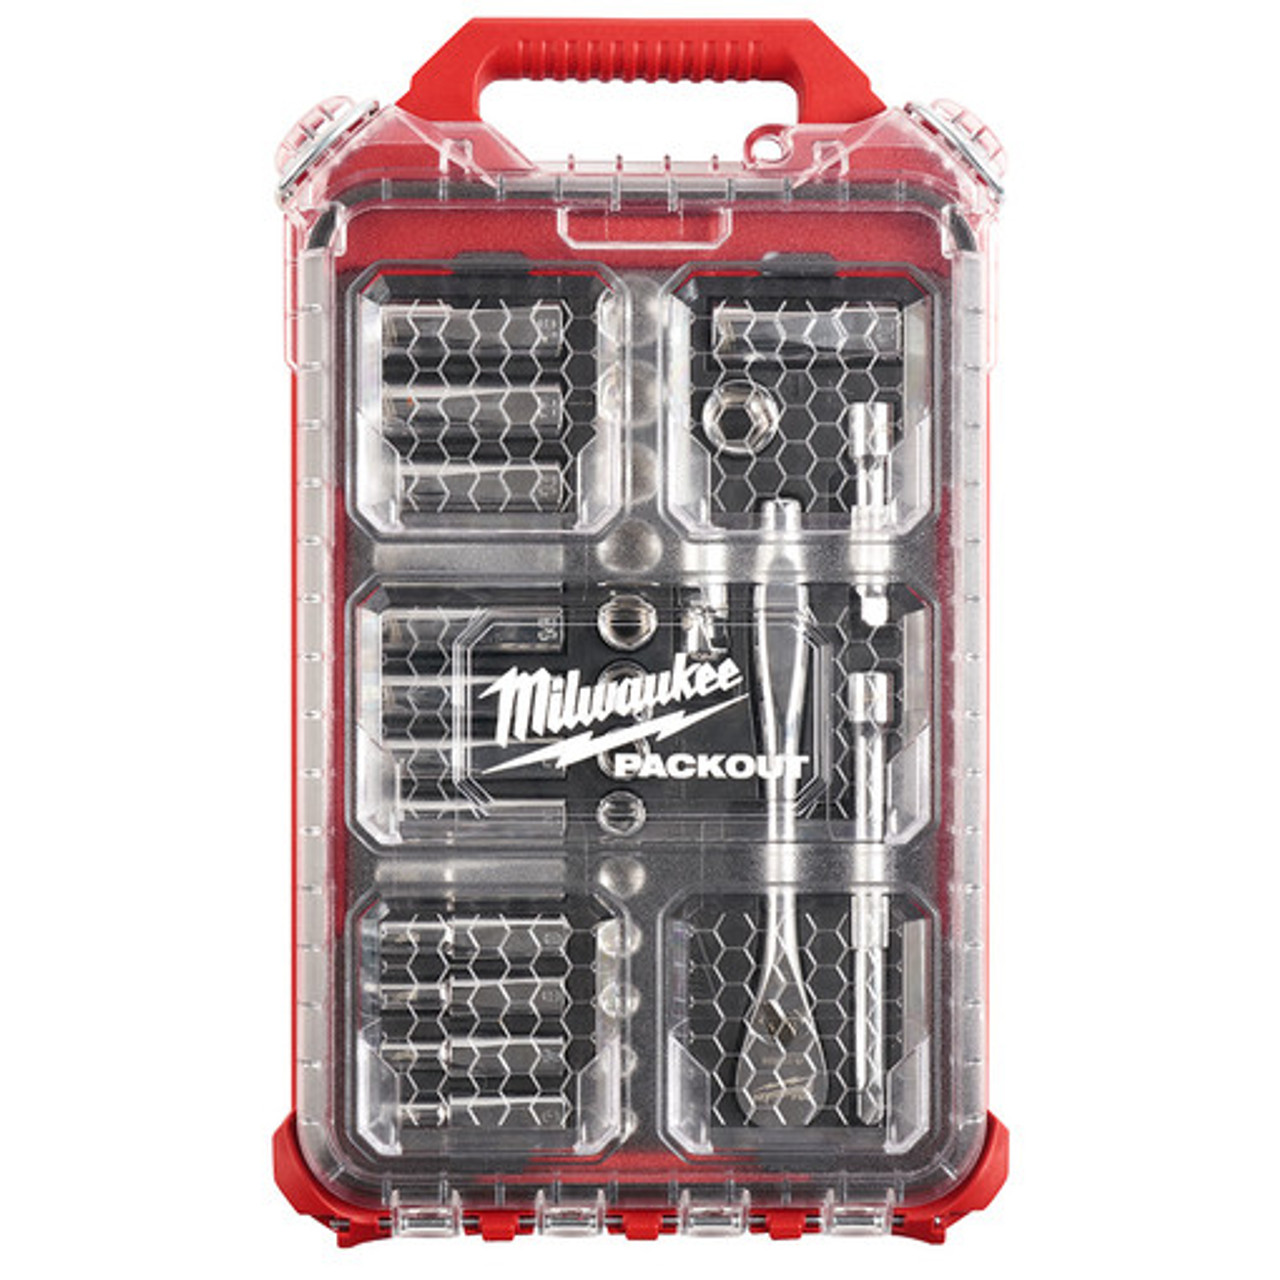 Milwaukee 48-22-9482 3/8 Drive 32 pc Ratchet & Socket Set with PACKOUT Low-Profile Compact Organizer - Metric